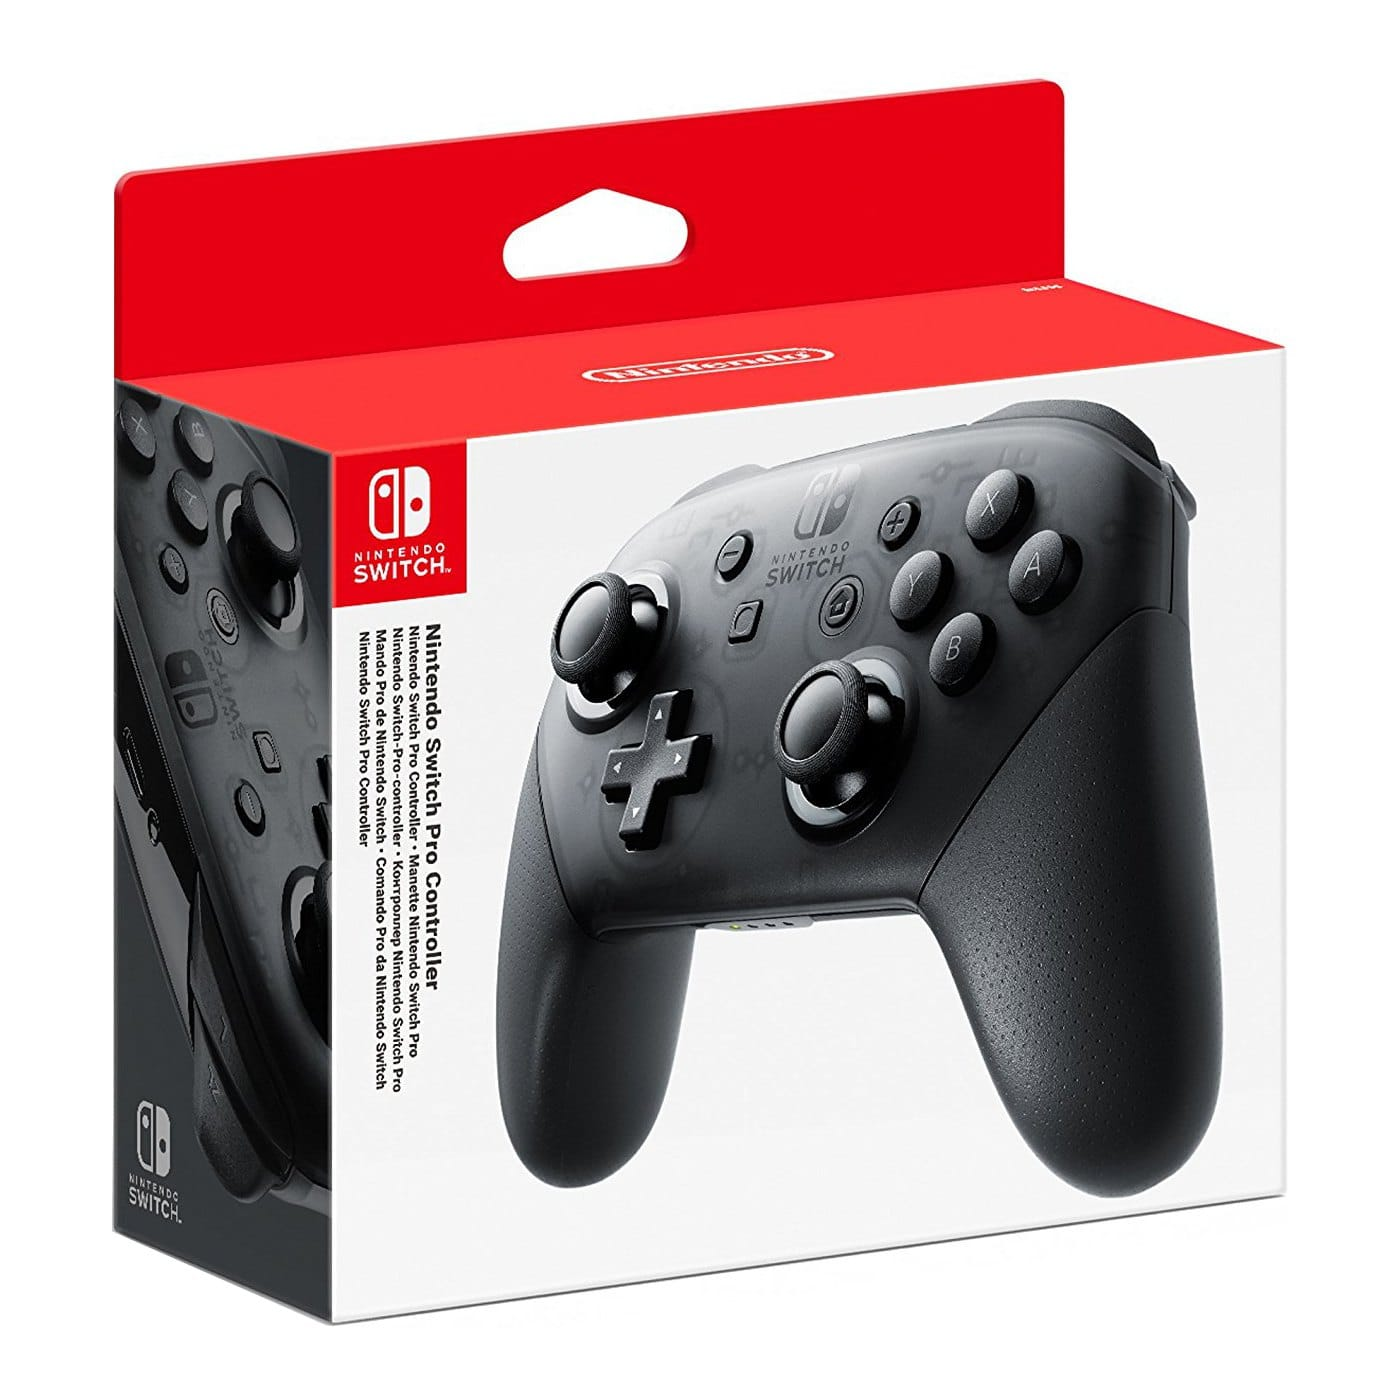 Nintendo Switch Pro Controller $60, Nintendo Switch Joy-Con Neon Yellow Controllers $69 + Free Shipping